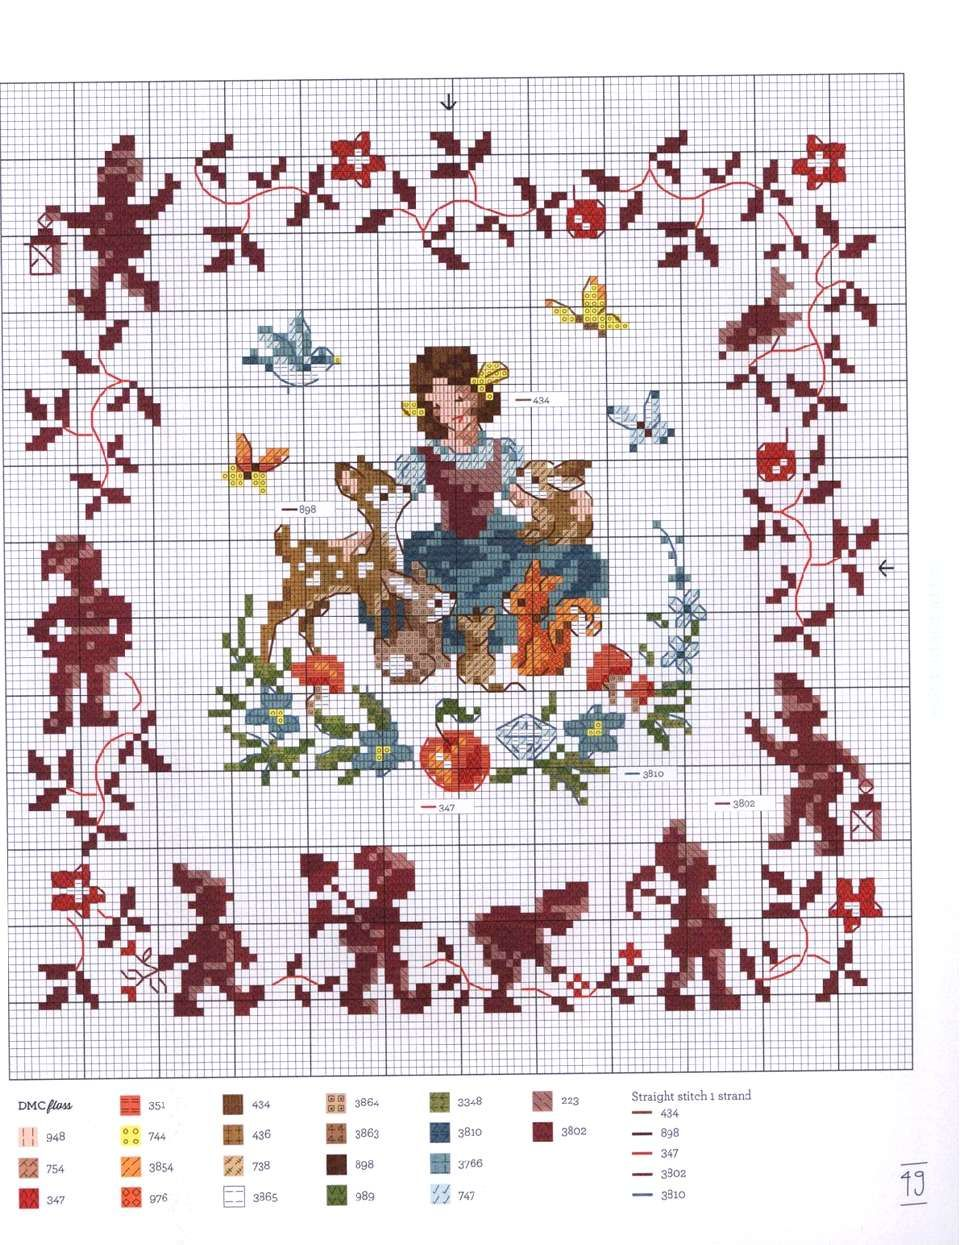 """Photo of Photo from album """"Fables & Fairy Tales to Cross Stitch 2018"""" on Yandex.Disk"""